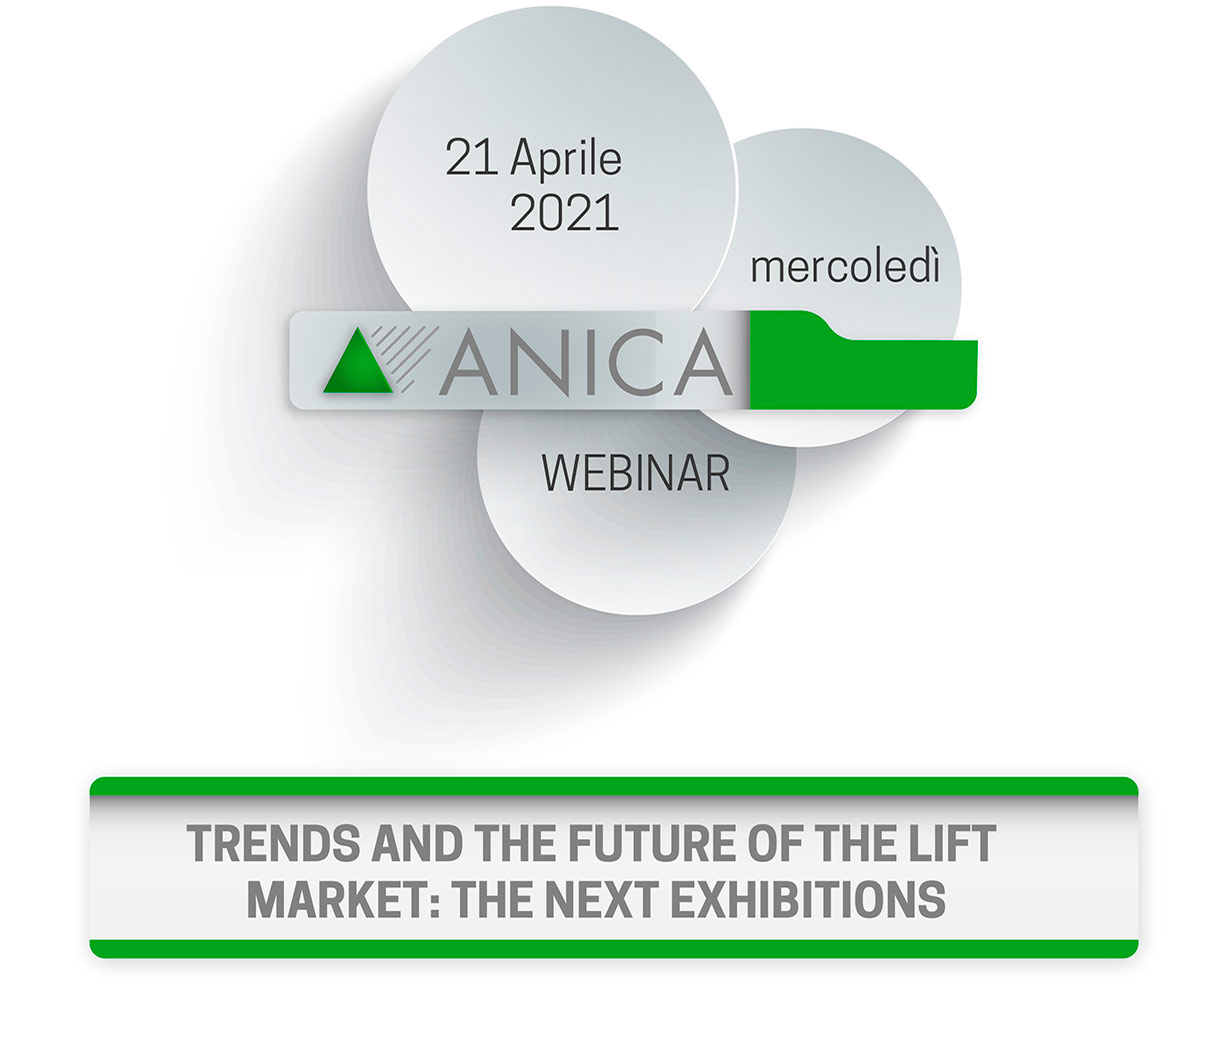 TRENDS AND THE FUTURE OF THE LIFT MARKET: THE NEXT EXHIBITIONS